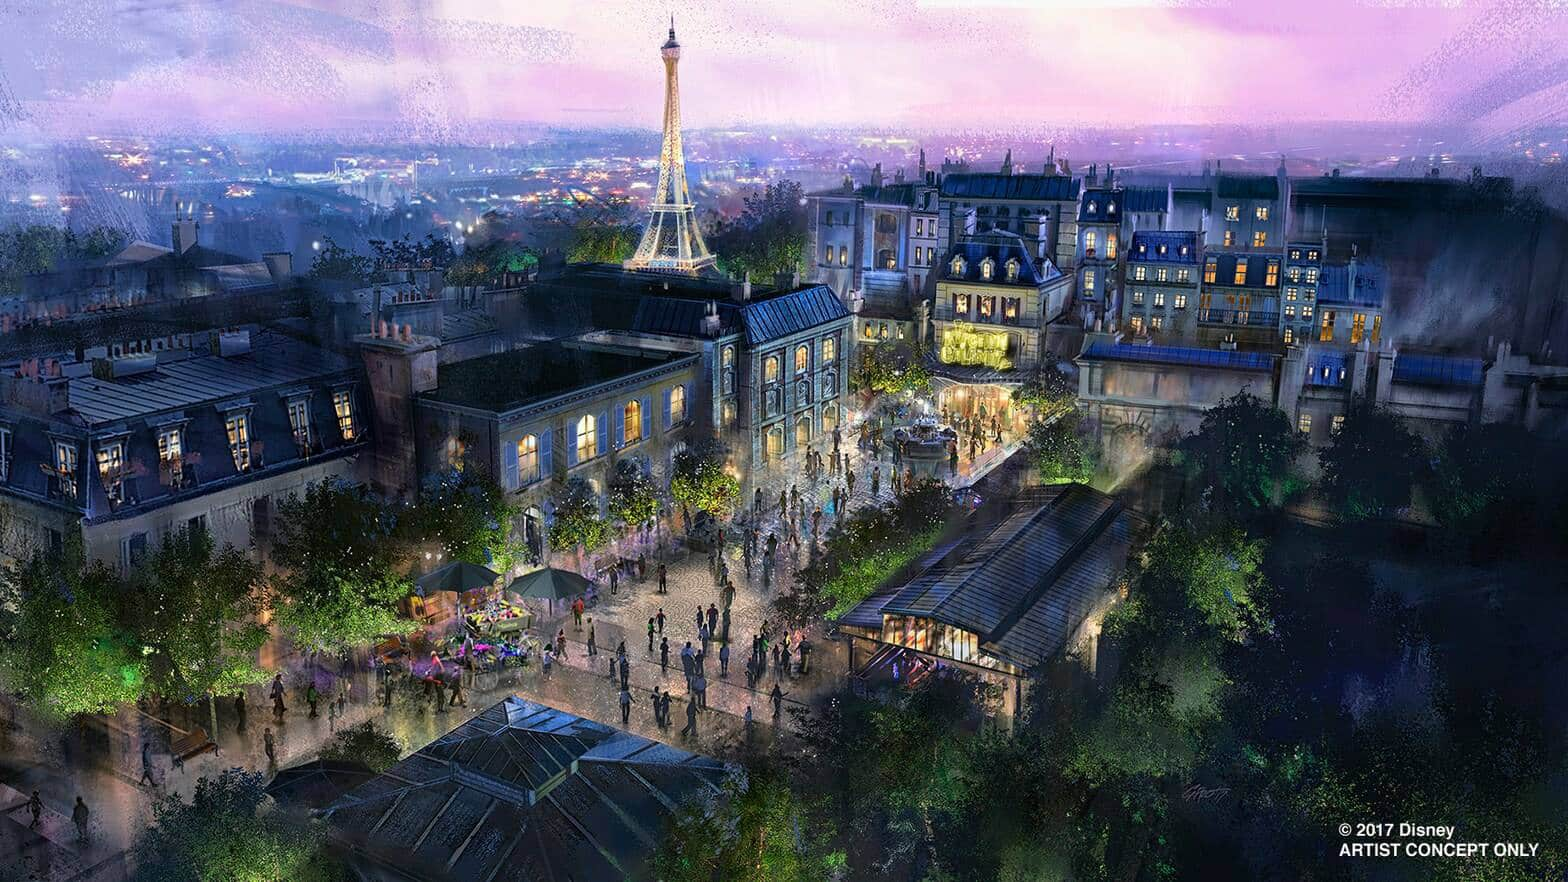 An artist rendering of the France Pavilion at Epcot